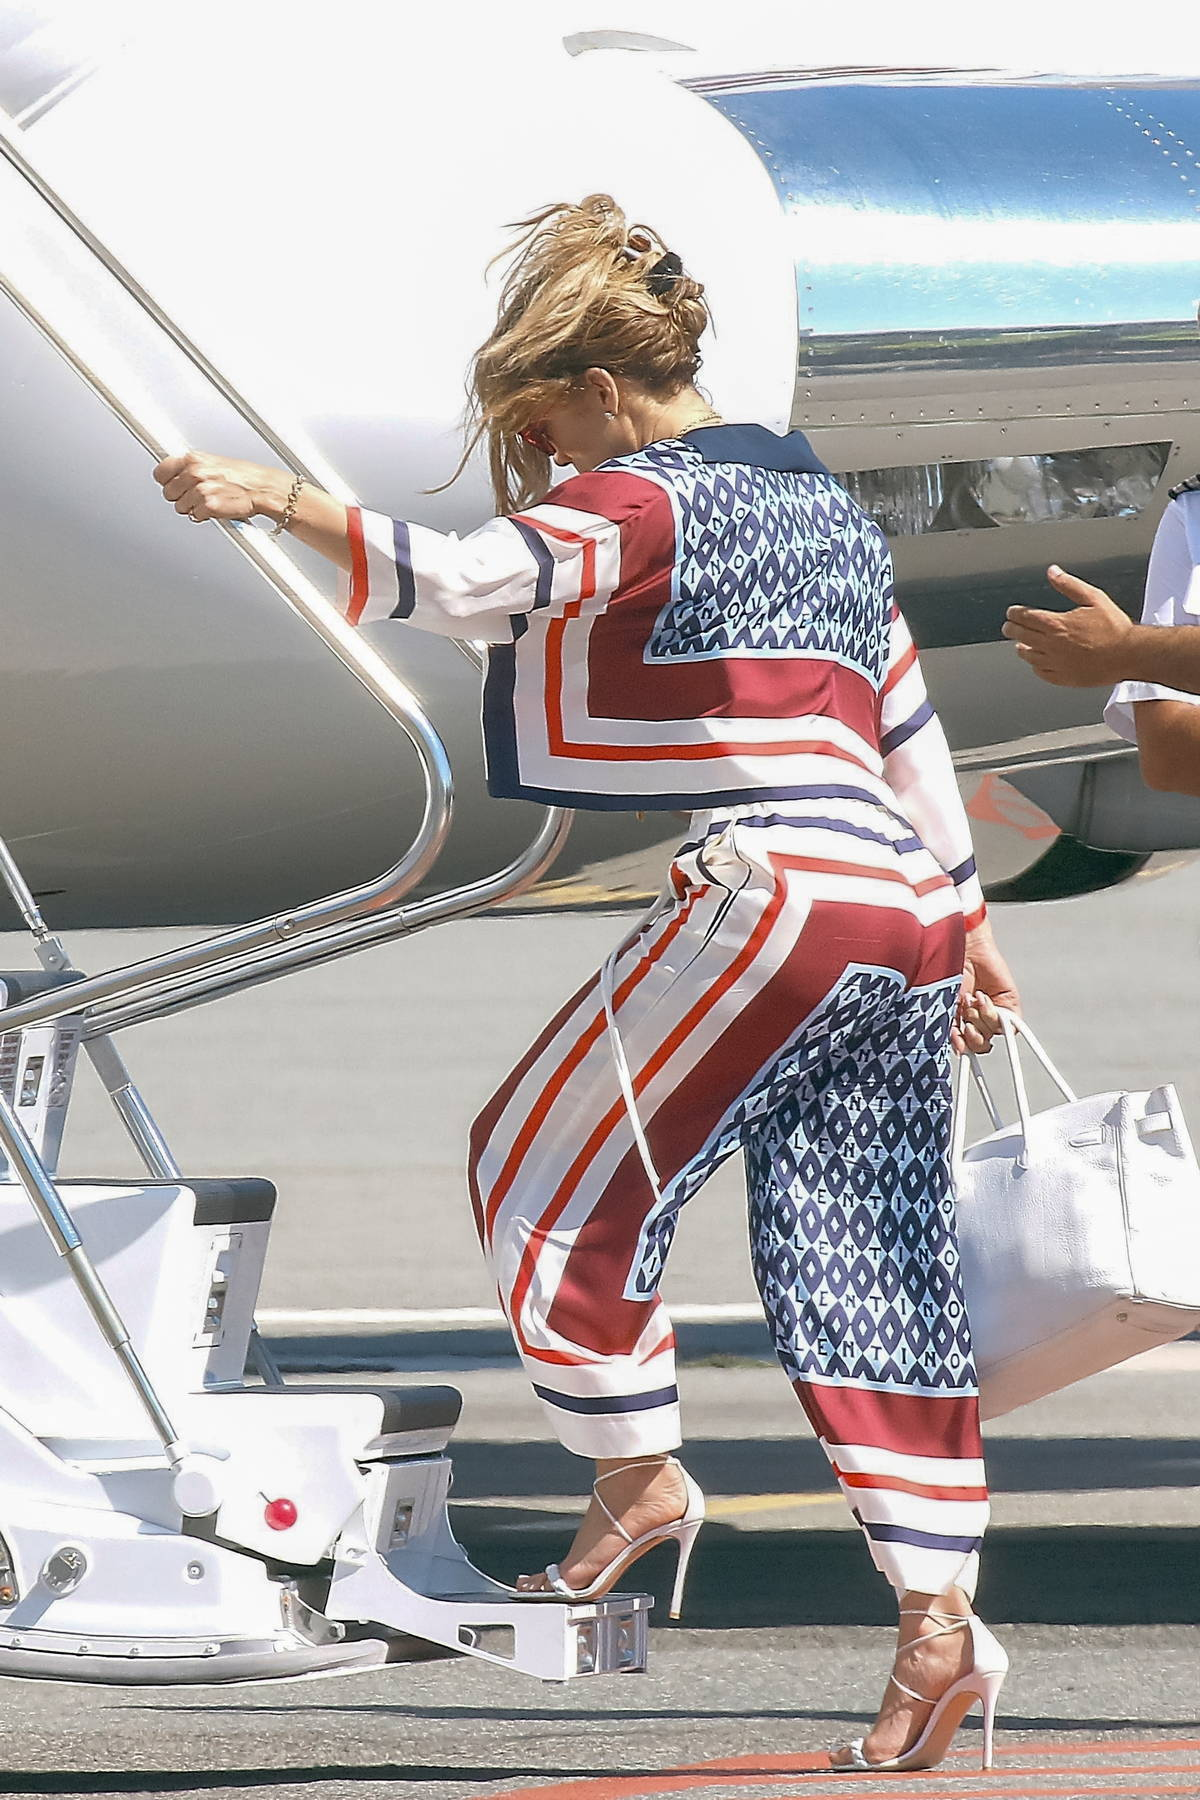 Jennifer Lopez says goodbye to her European getaway as she boards a private jet in Saint-Tropez, France